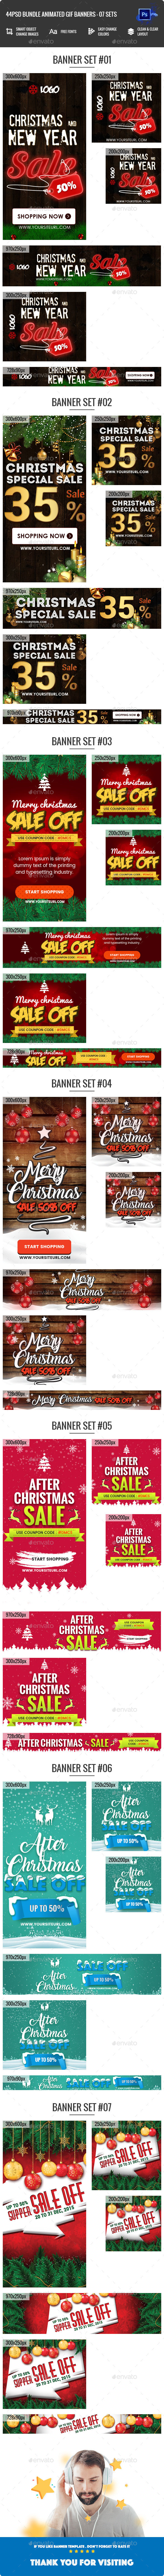 Bundle Animated GIF Merry Christmas Banners Ad - 44 PSD - Banners & Ads Web Elements